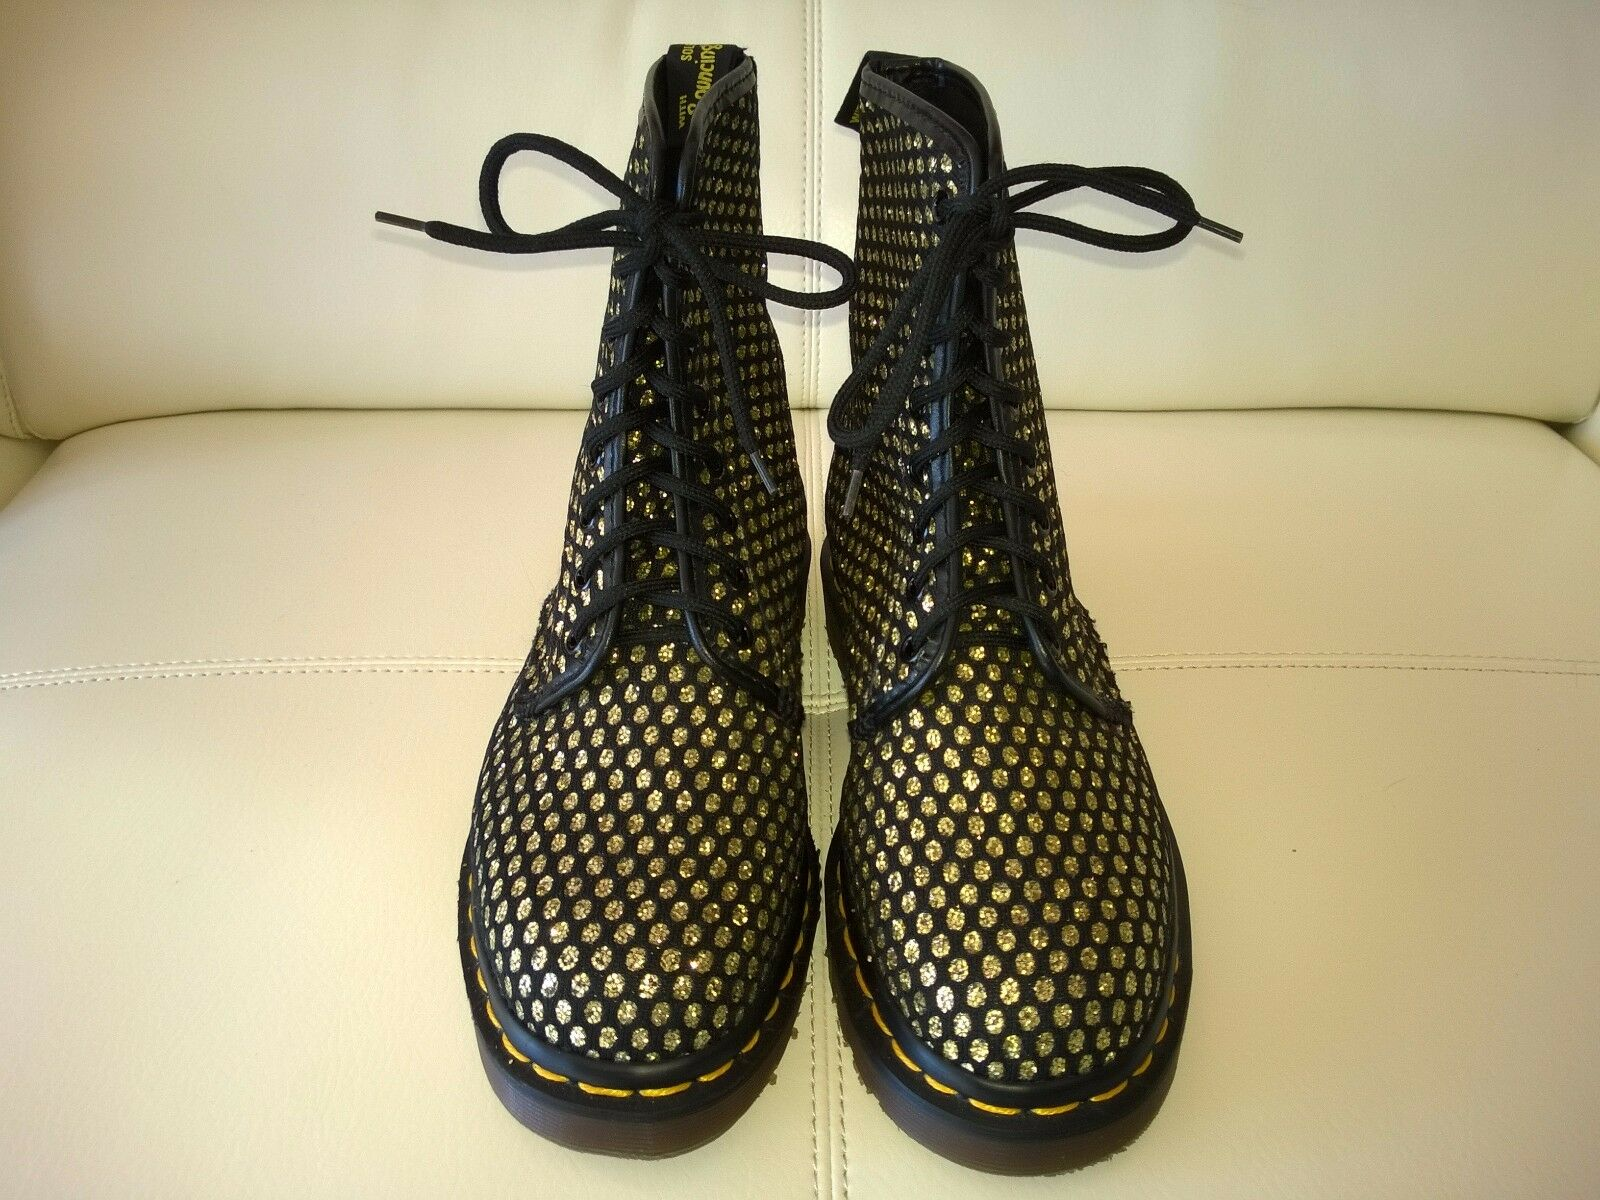 DOC DR MARTENS GOLD GLITTER BLACK FISHNET FISHNET FISHNET BOOTS RARE VINTAGE MADE IN ENGLAND 5UK 258401